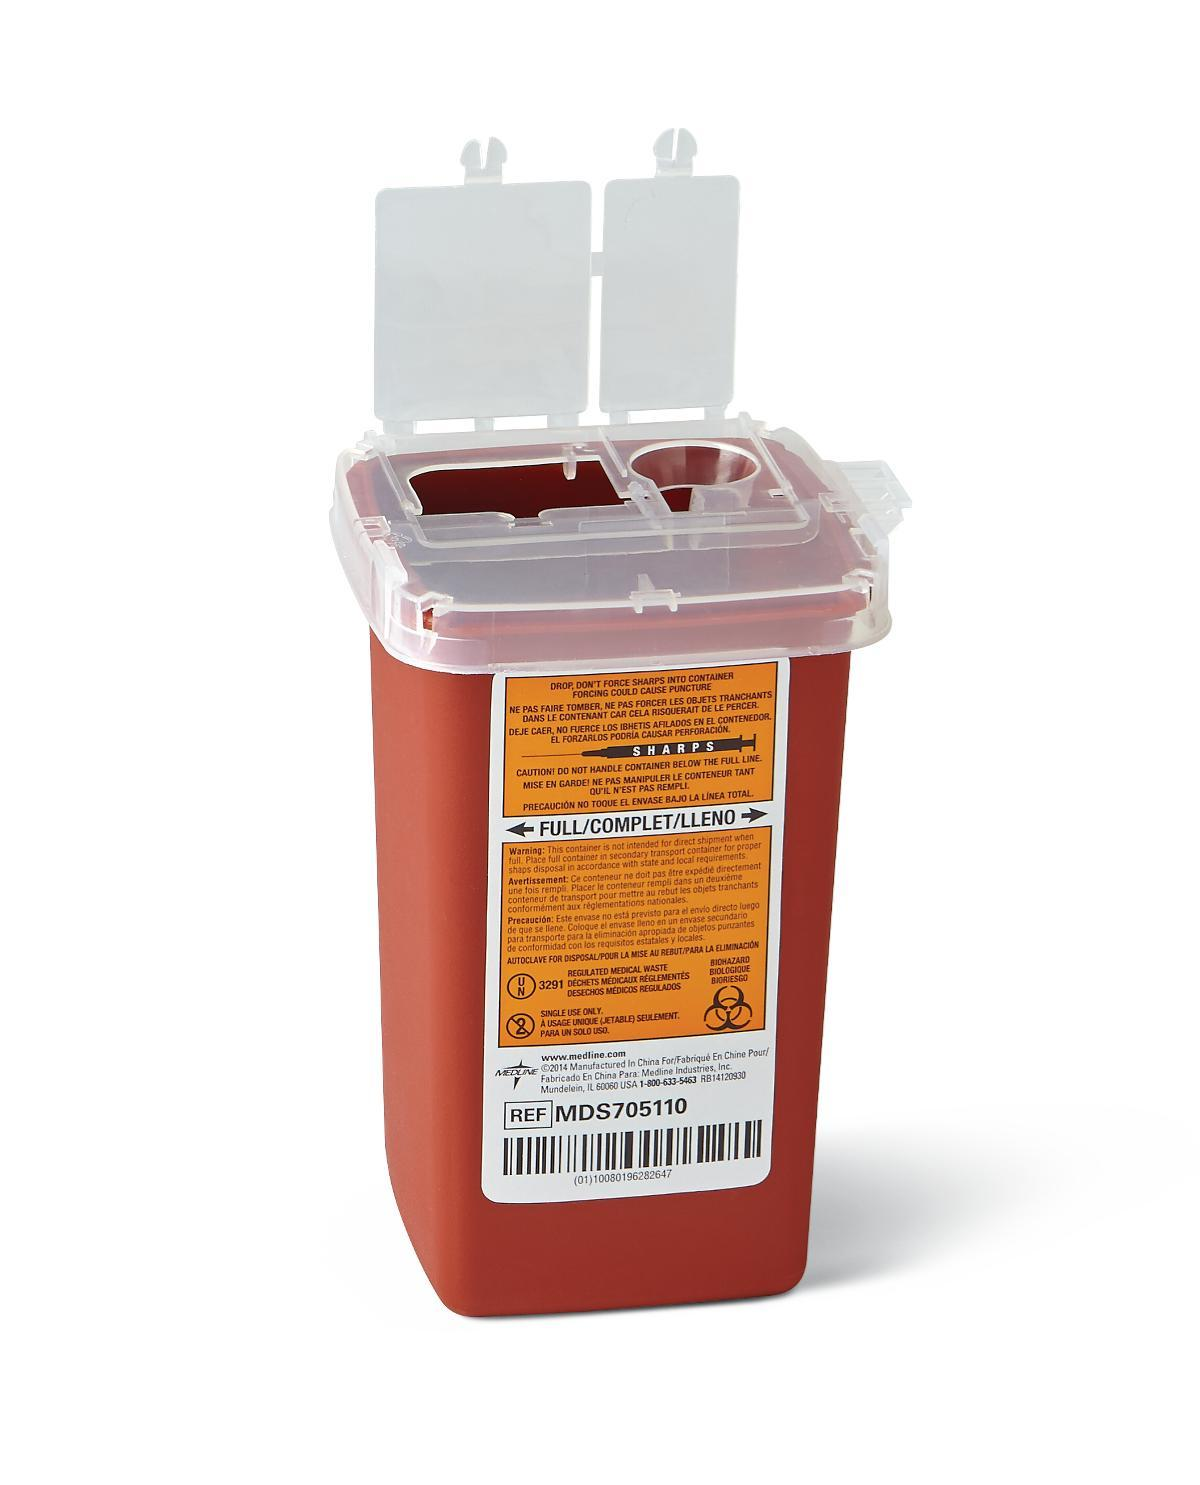 Nursing Supplies & Patient Care Sharps Containers - Mds705110 - Container Sharps 1 Qt. Red Phleb. MDS705110